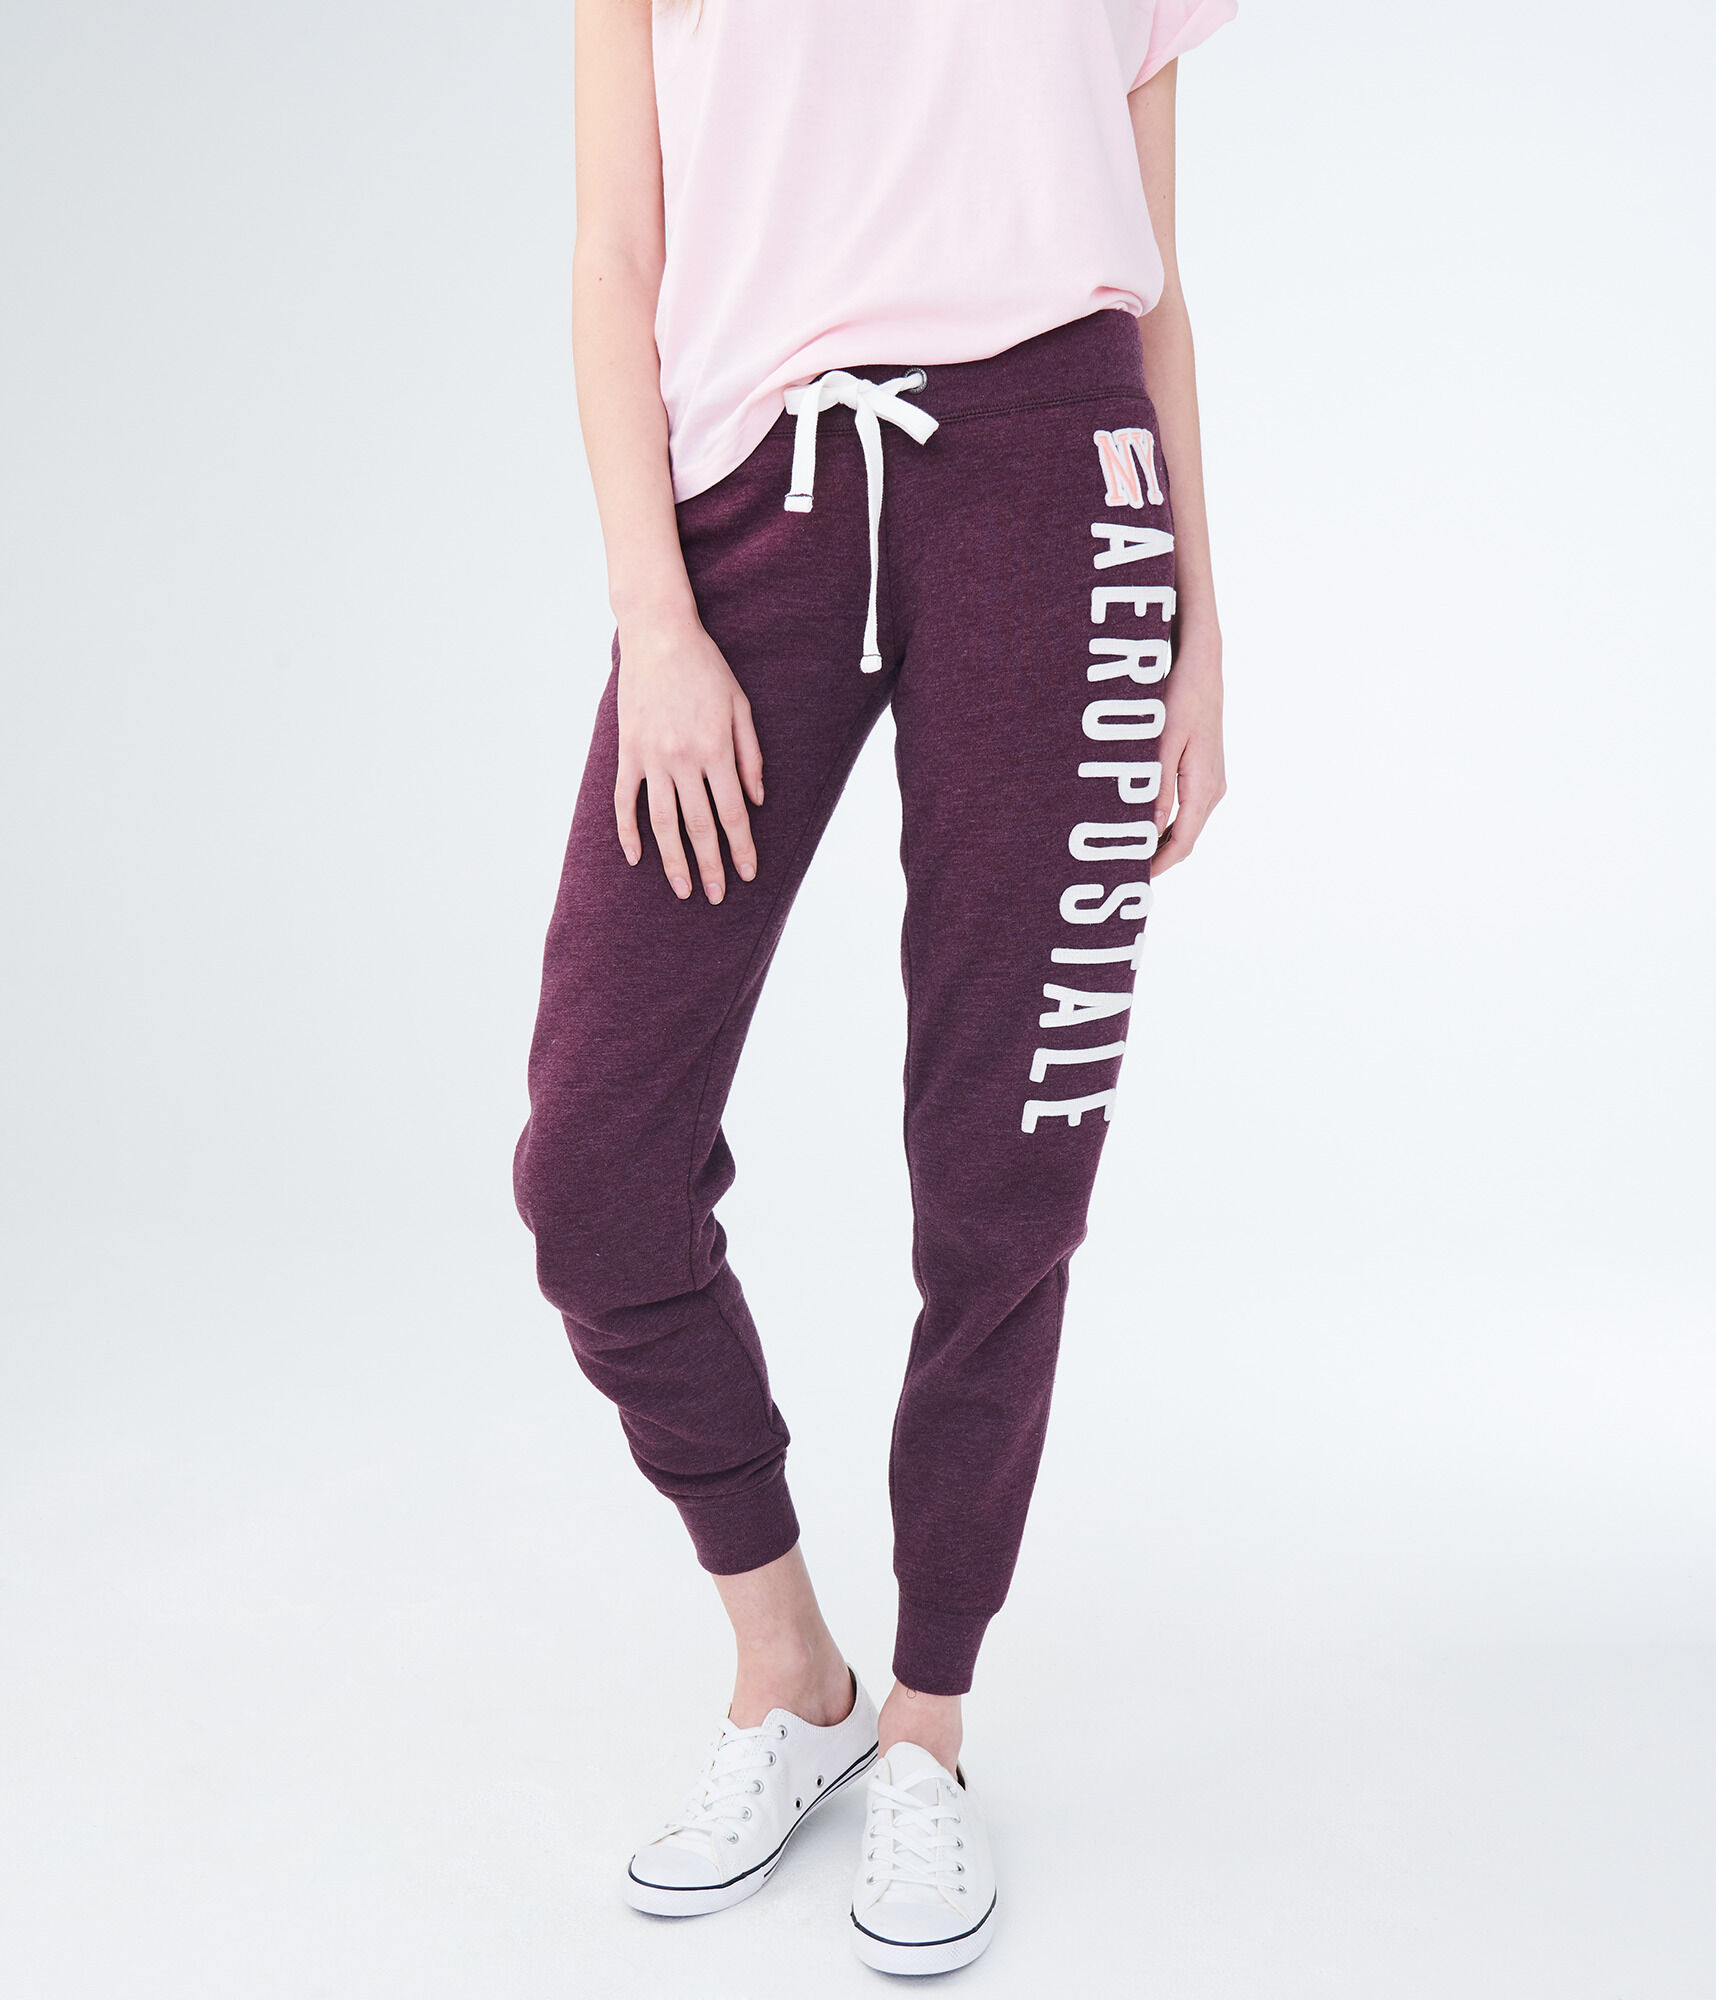 2019 year for women- Boyfriend Aeropostale sweatpants